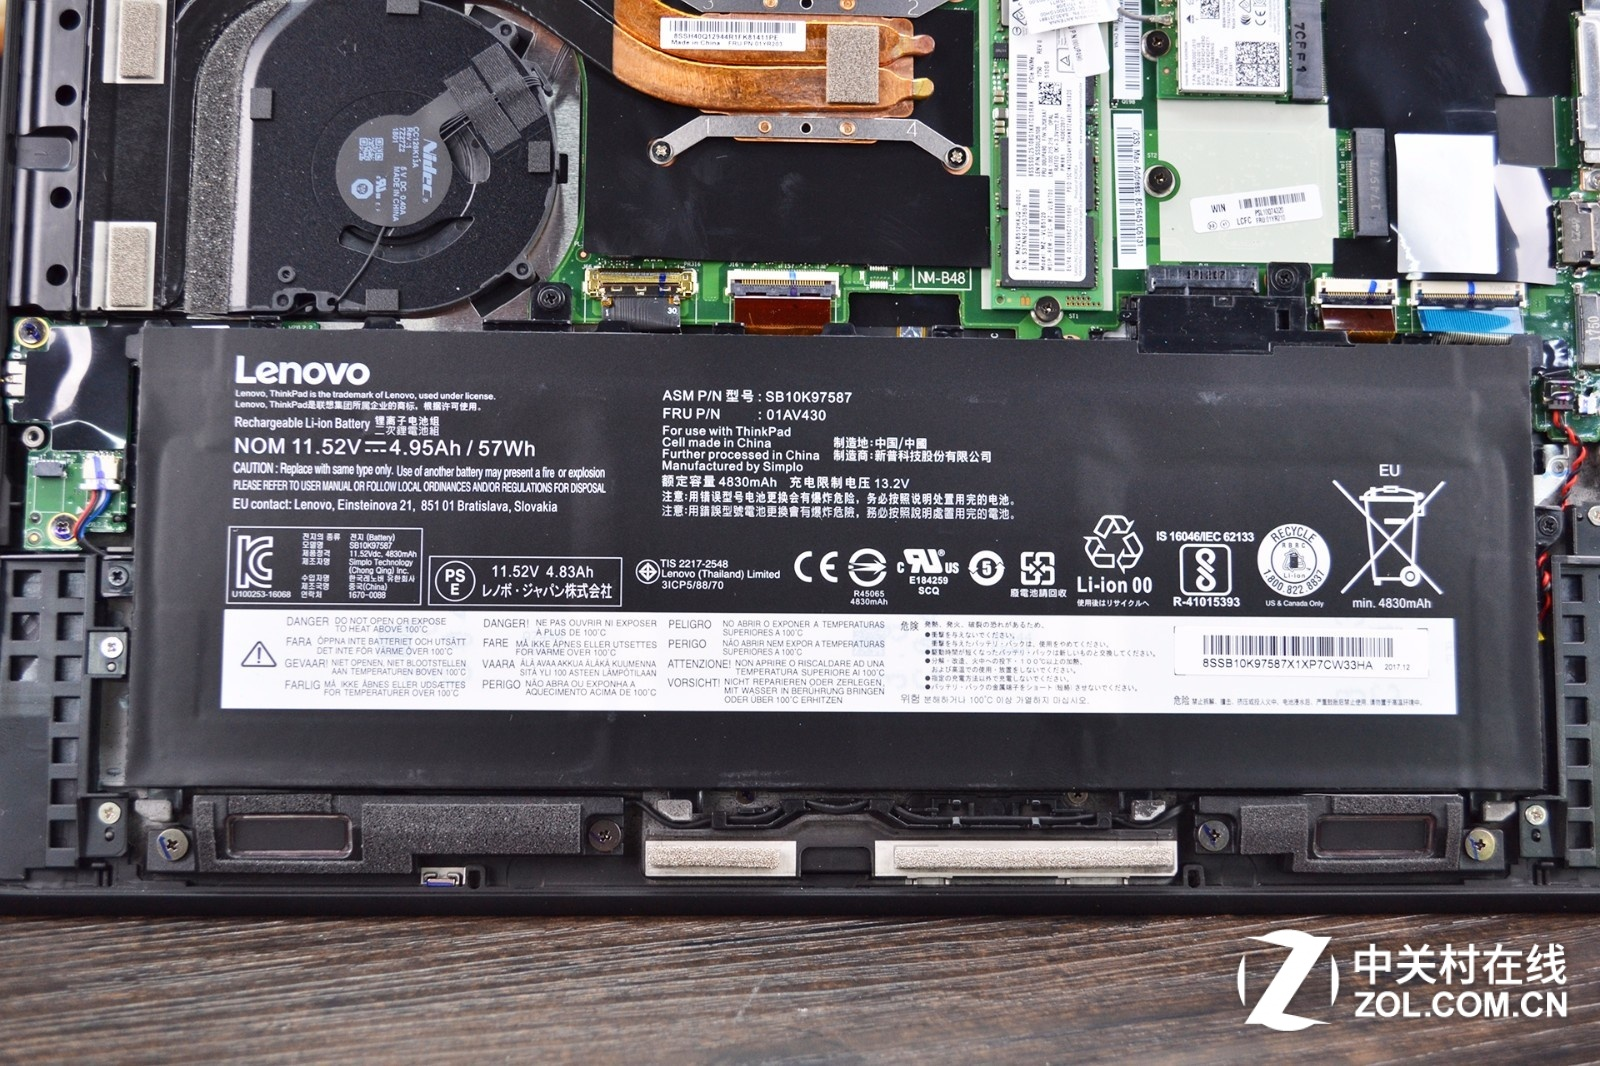 Lenovo ThinkPad X1 Carbon 6th Gen 2018 Disassembly and RAM, SSD